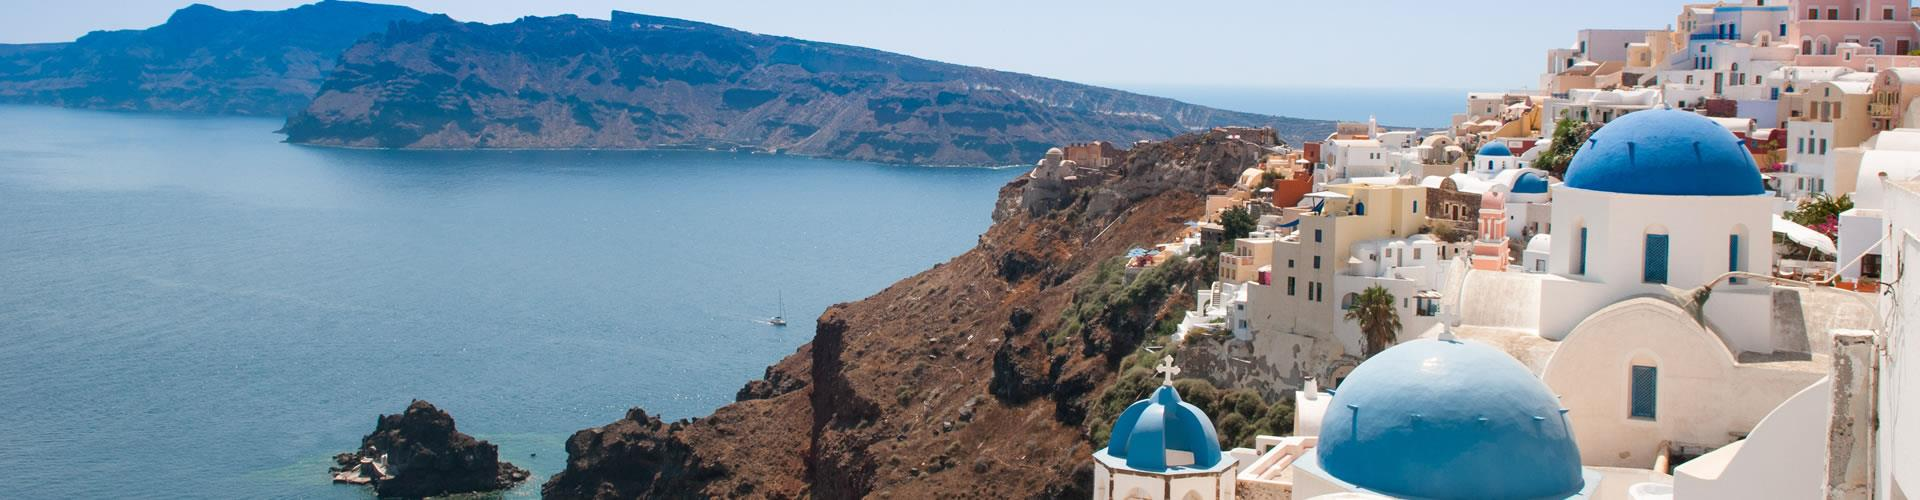 What is the best place to stay in Santorini